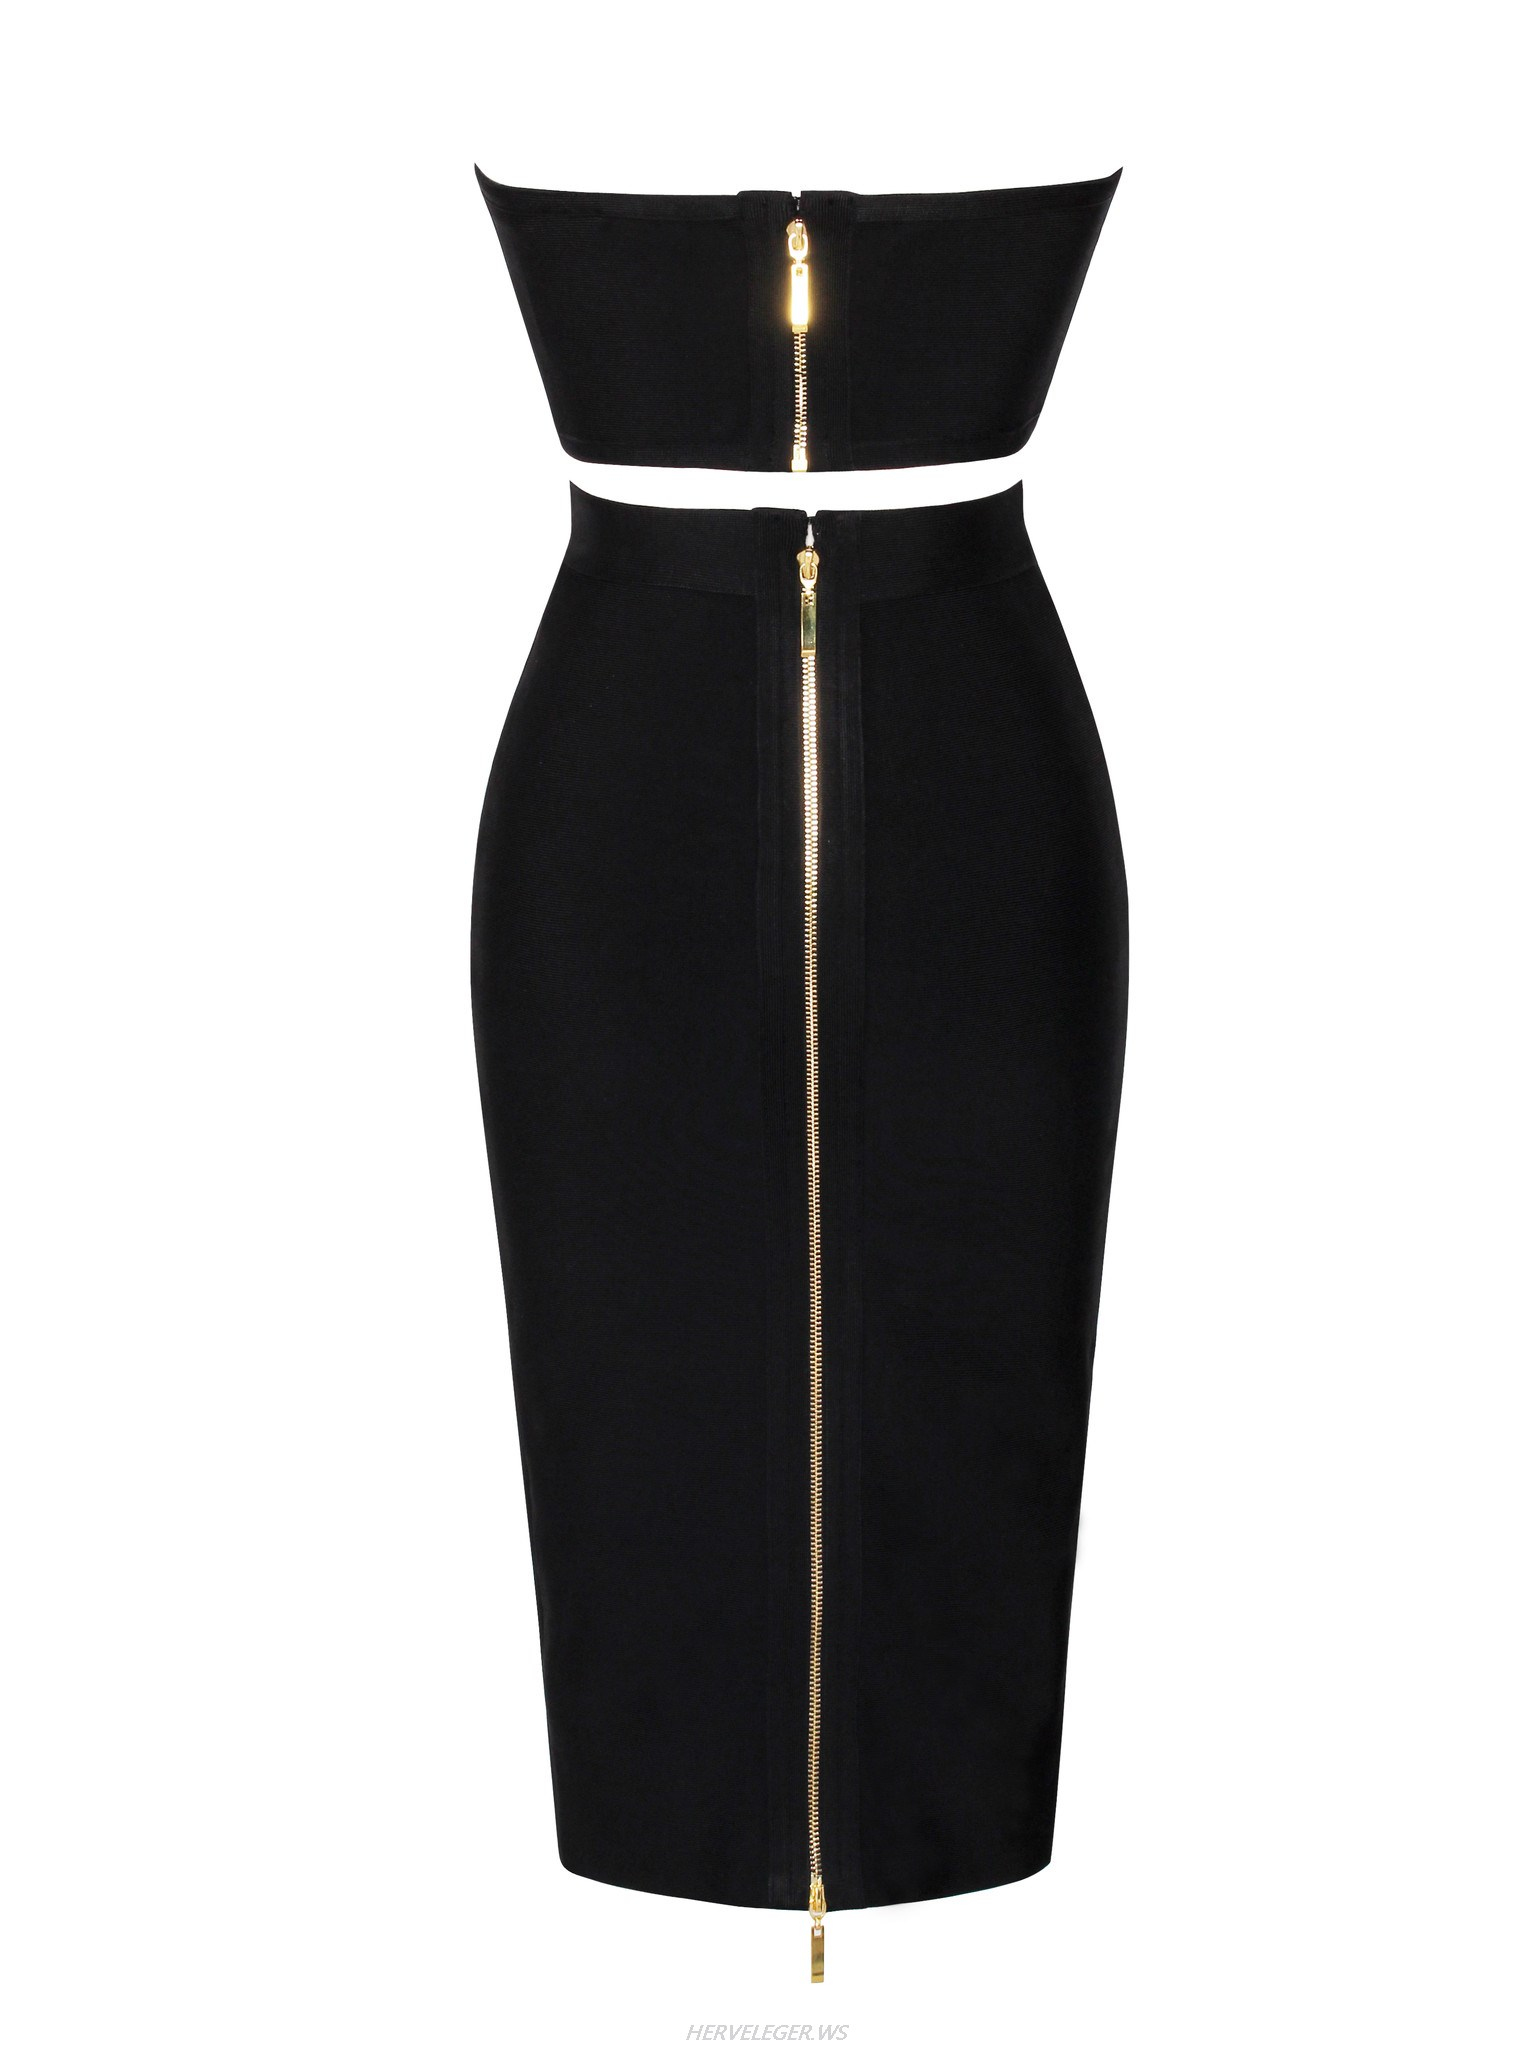 Herve Leger Black Strapless Sweetheart Top Two Piece Dress